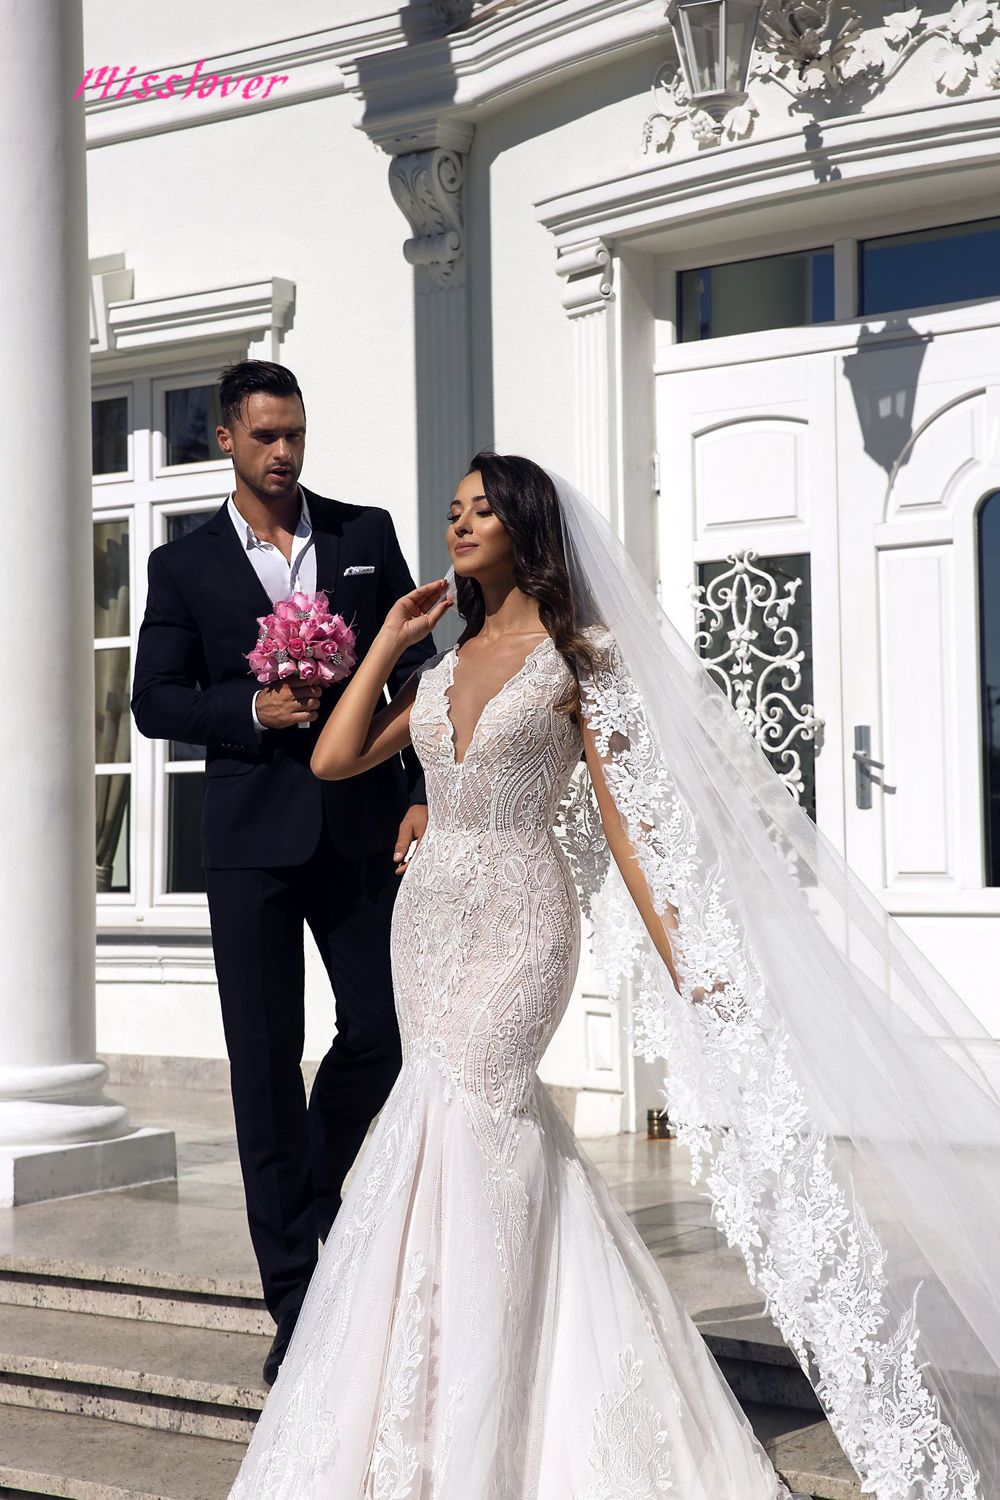 Image 4 - Robe de mariee sexy Illusion V neck Backless Lace Mermaid Wedding Dresses 2019 new Luxury Bridal Gown vestidos de noiva-in Wedding Dresses from Weddings & Events